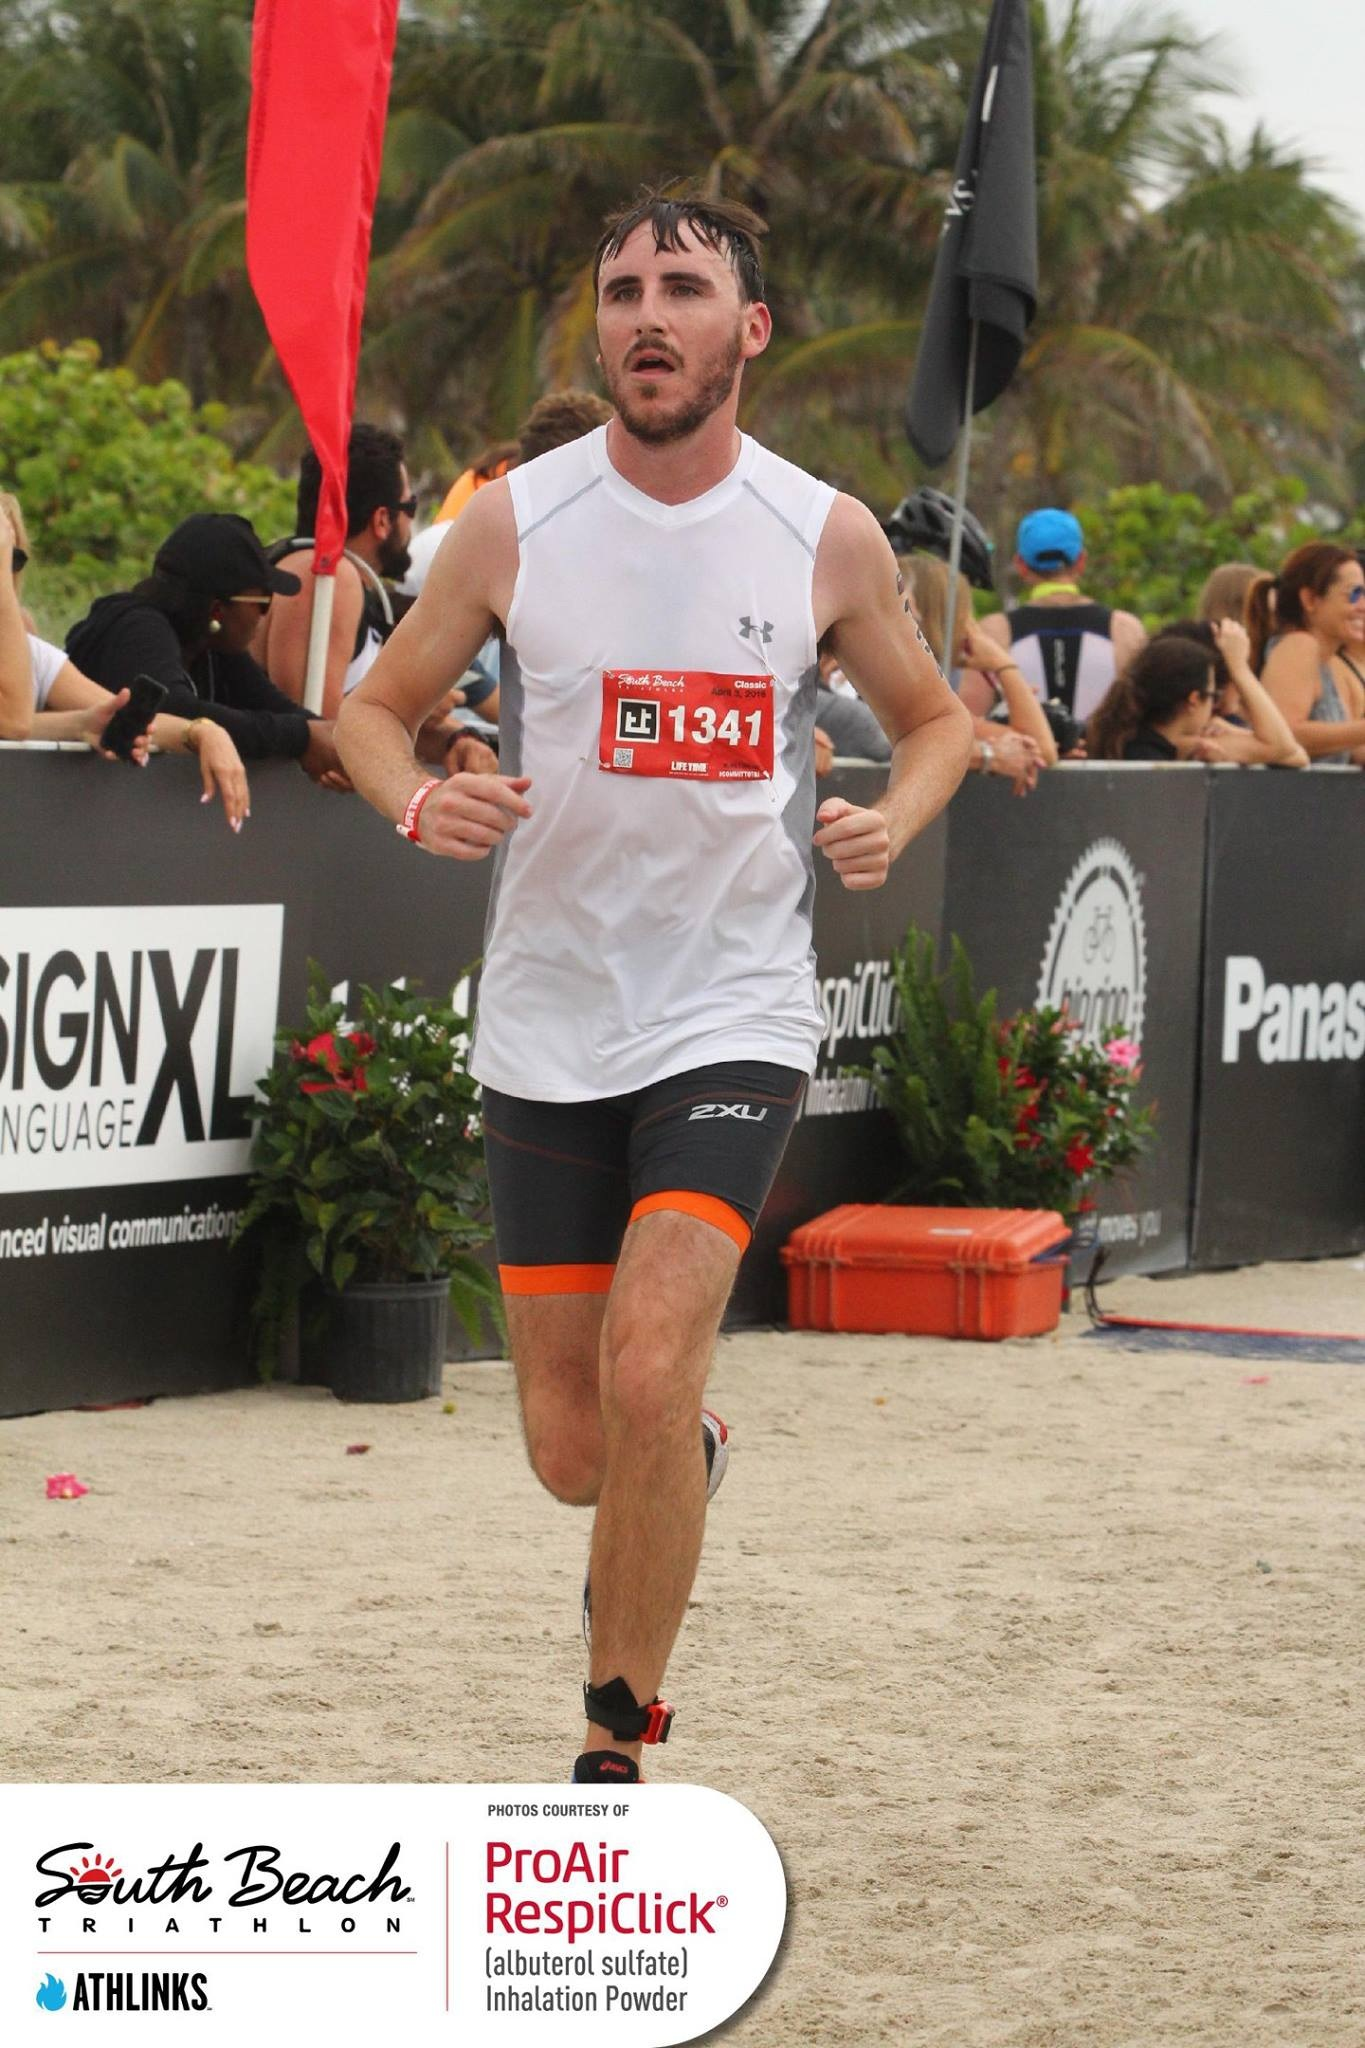 About me - I am a business reporter for the Miami Herald.I am usually hanging out on Twitter, @rjwile.I grew up in Chicago.Here's me running the South Beach triathlon— which was, in all honesty, only about as difficult as something called a South Beach triathlon could be. Still proud I made it though.